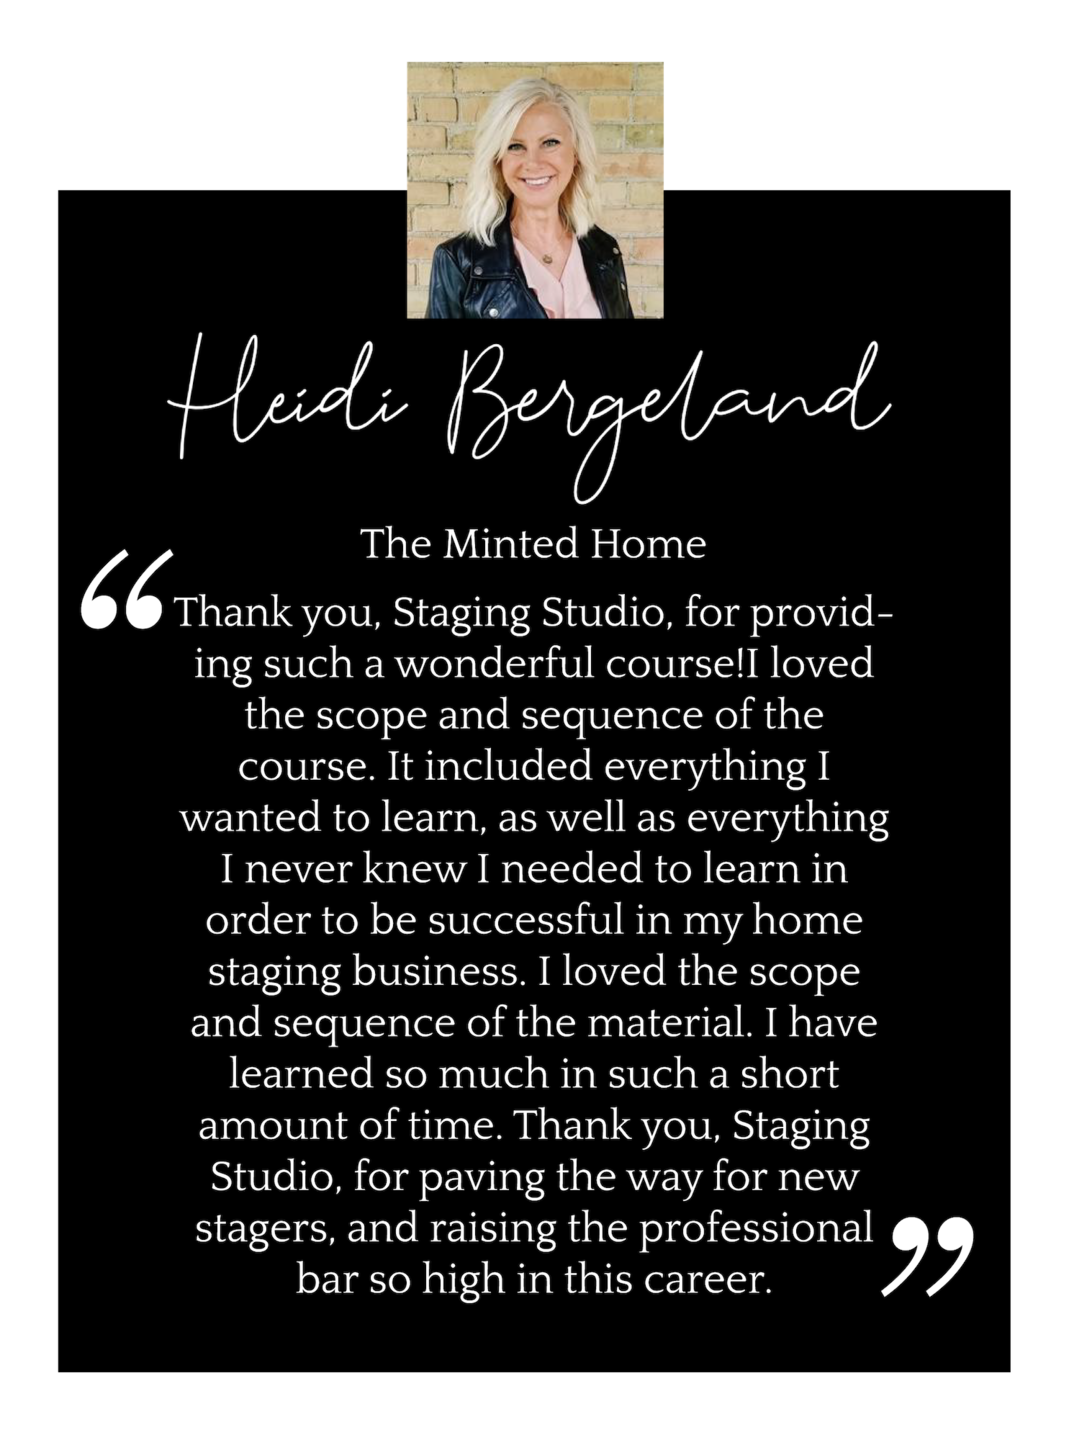 Heidi Bergeland - The Minted Home - said: Thank you, Staging Studio, for providing such a wonderful course!I loved the scope and sequence of the course. It included everything I wanted to learn, as well as everything I never knew I needed to learn in order to be successful in my home staging business. I loved the scope and sequence of the material. I have learned so much in such a short amount of time. Thank you, Staging Studio, for paving the way for new stagers, and raising the professional bar so high in this career.